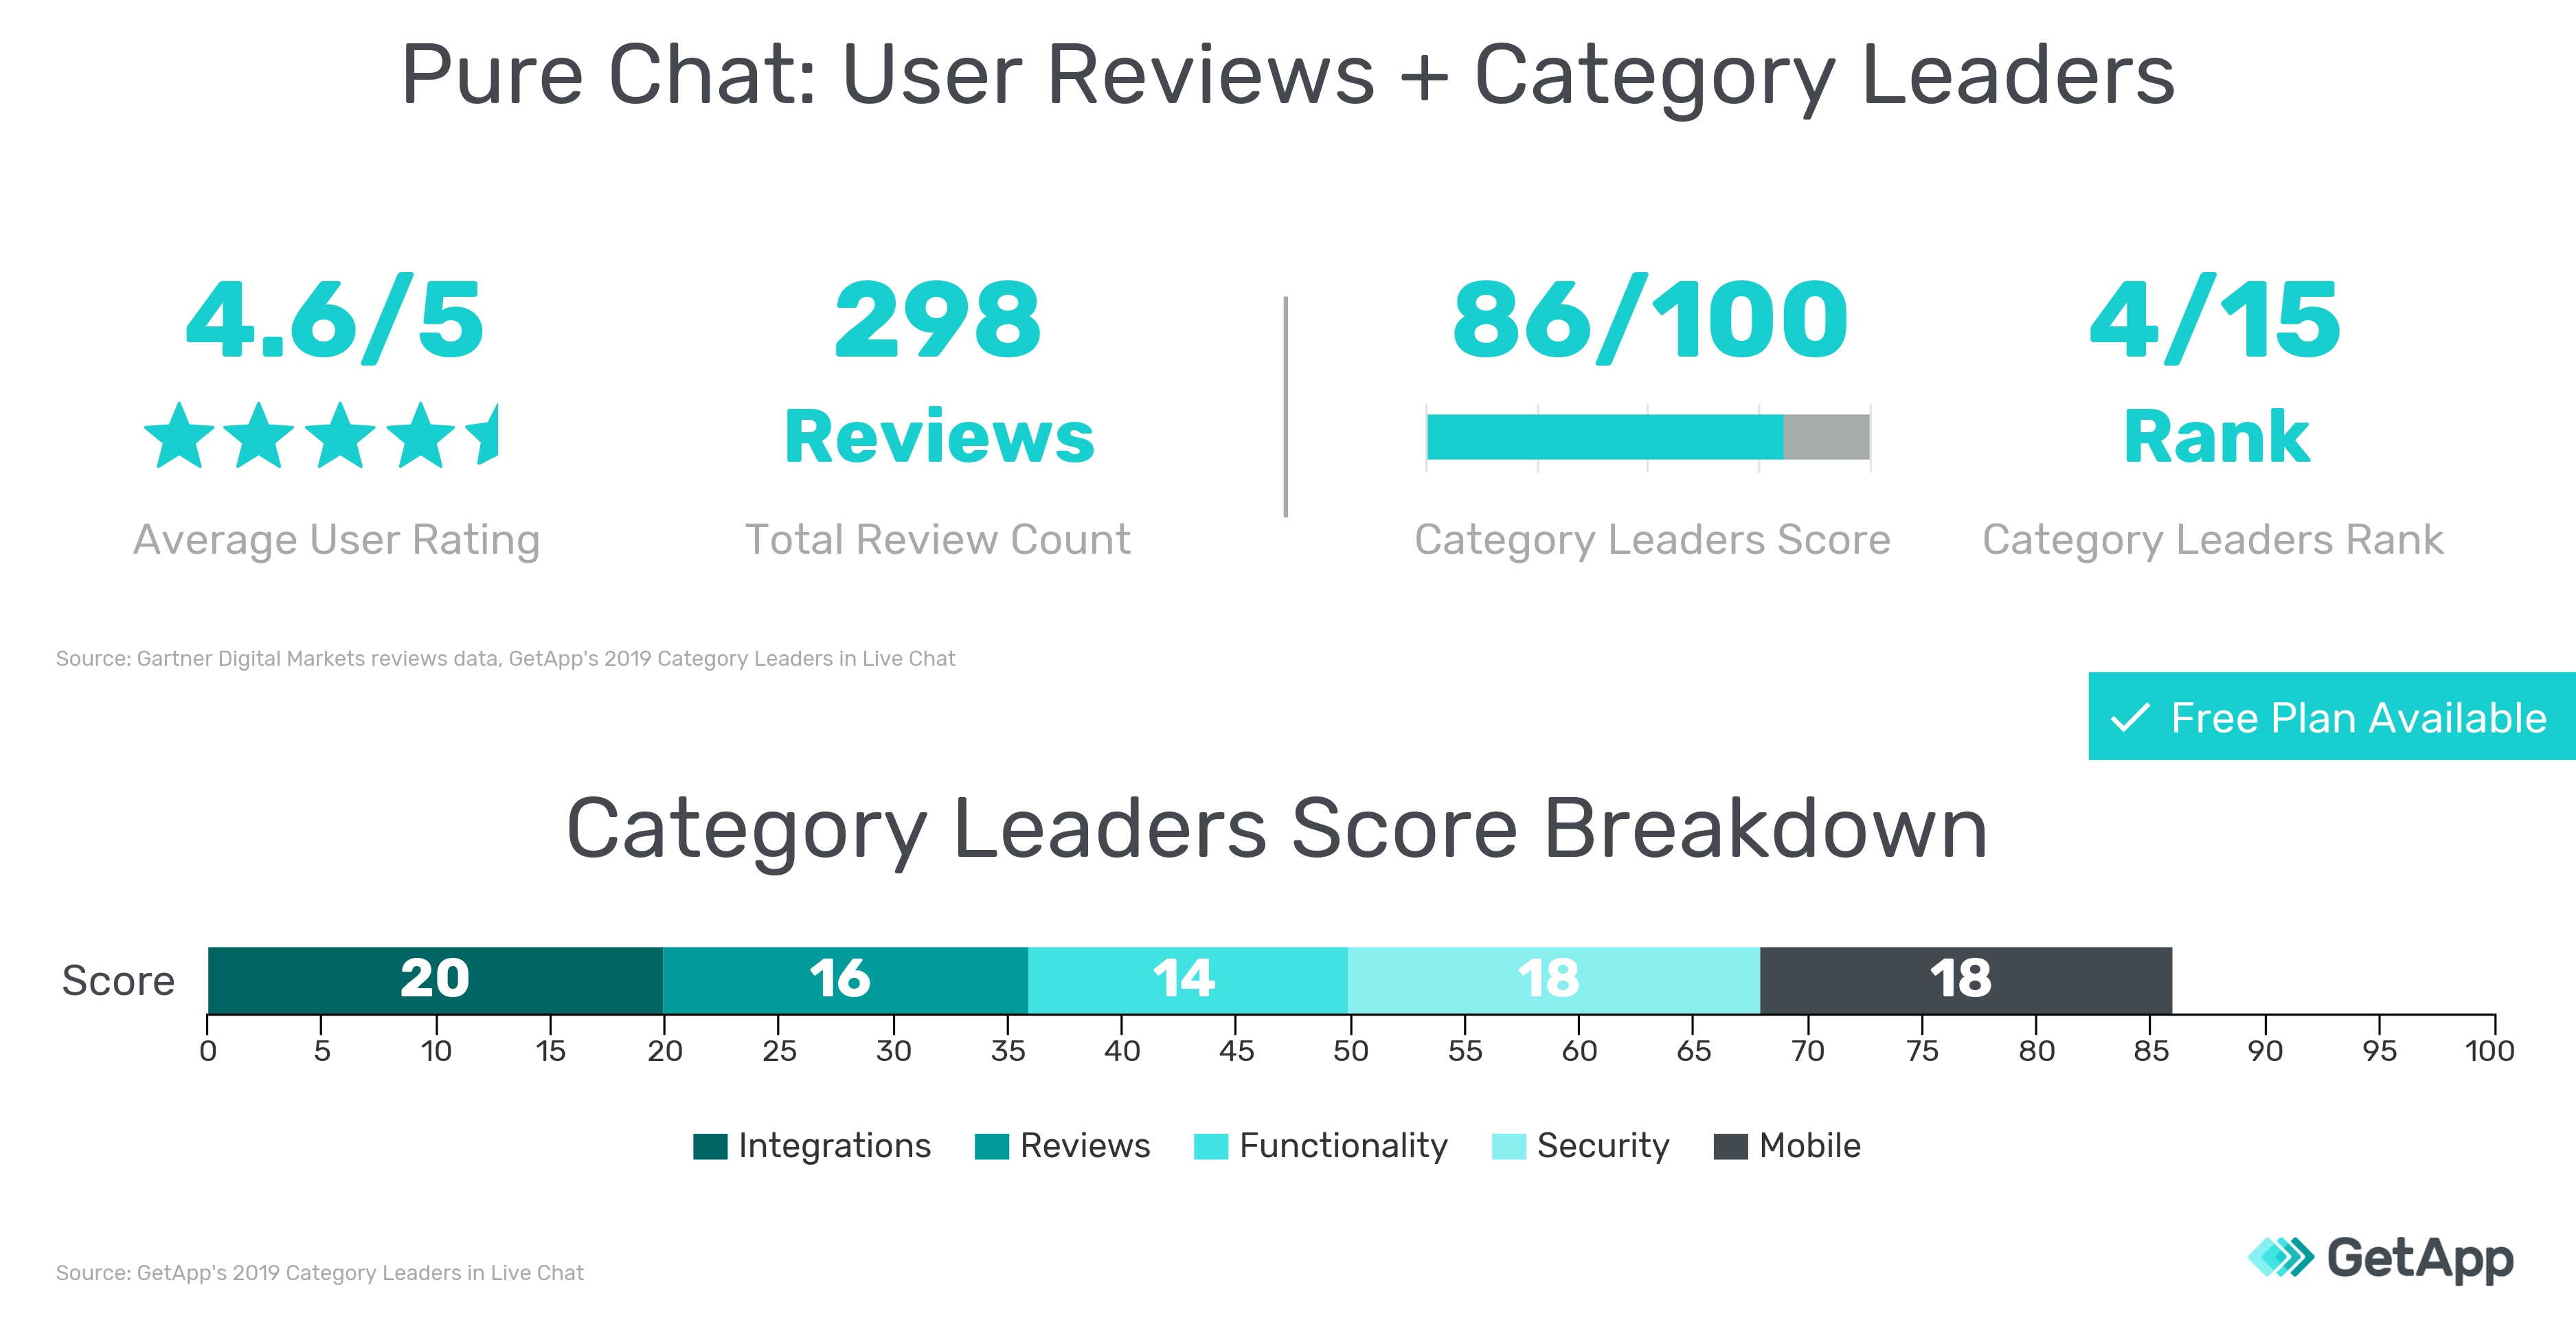 User reviews information and 2019 Category Leaders scores for Pure Chat graphic